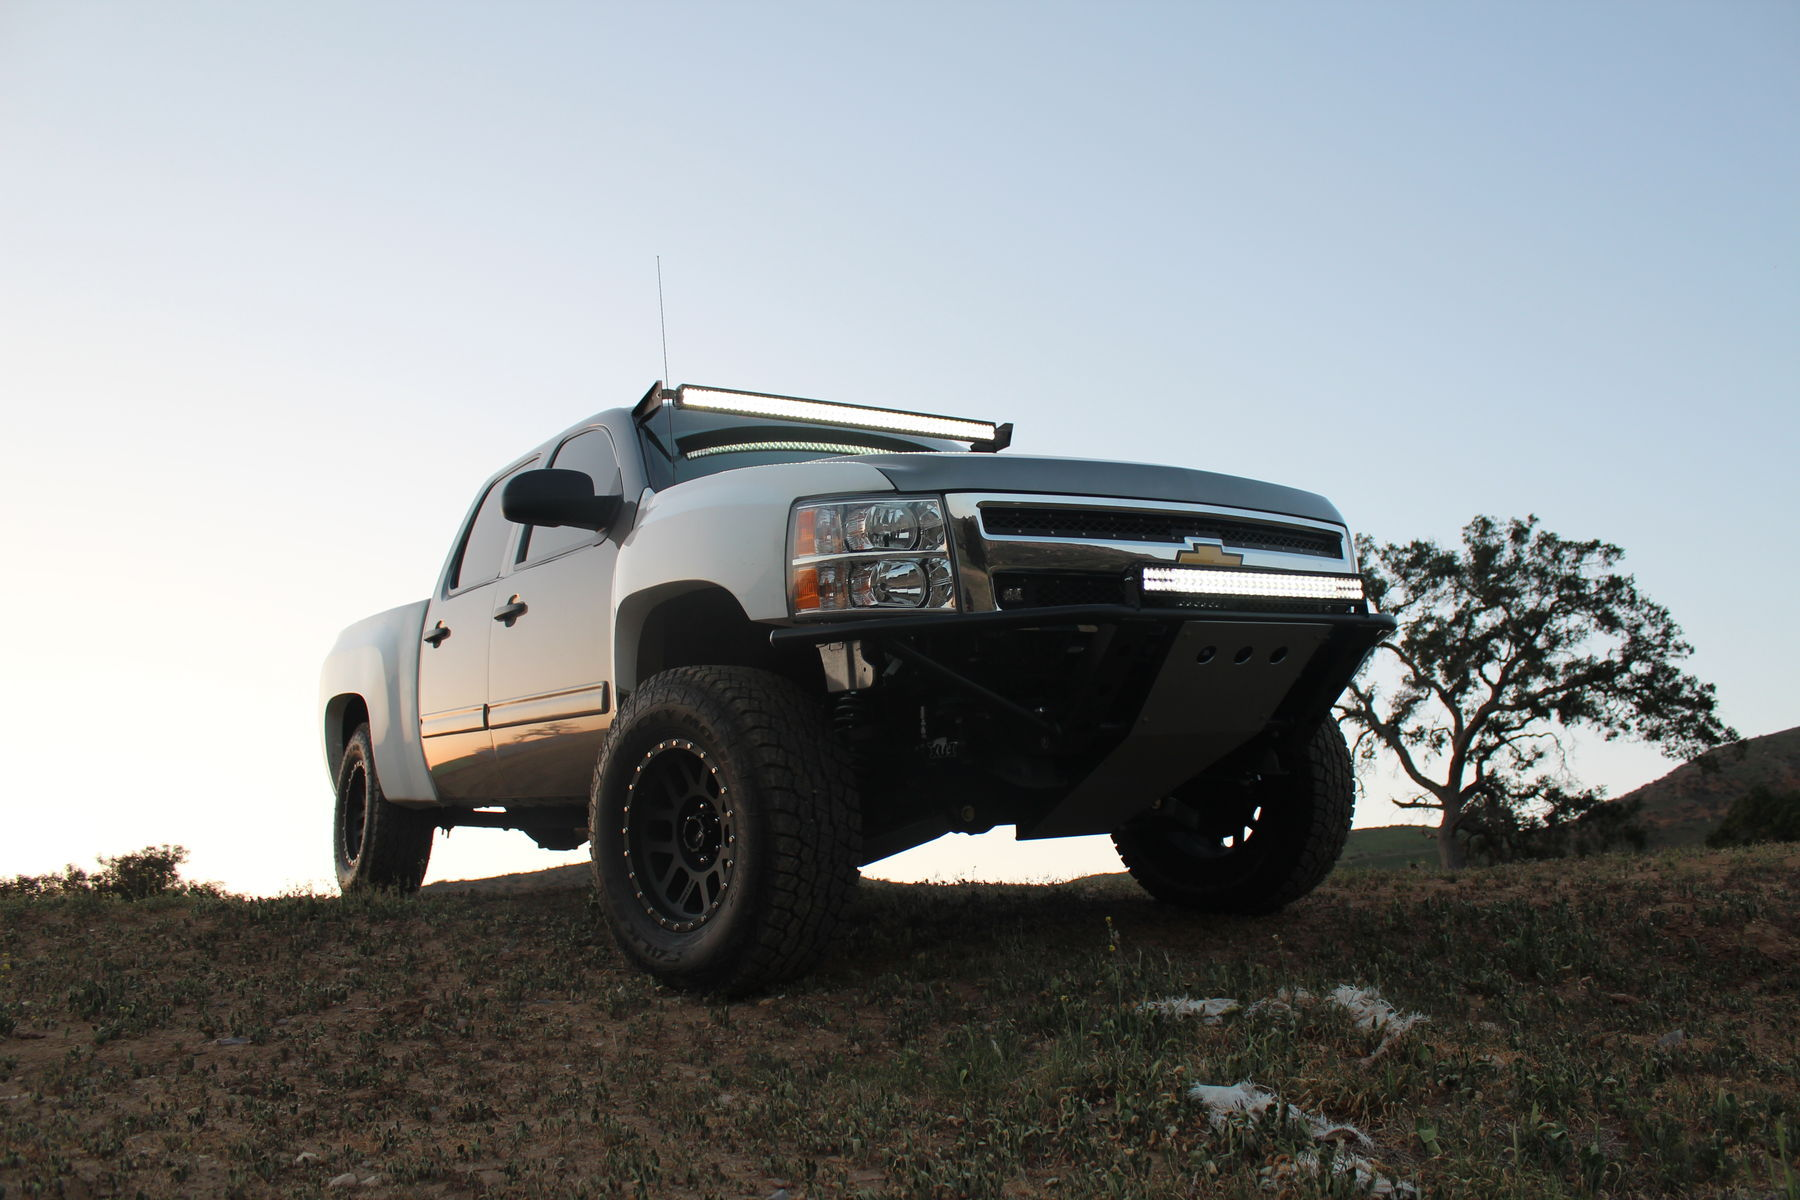 2012 Chevrolet C/K 1500 Series | Chevy Silverado 1500 Off-Road Build - Passenger Side Angle